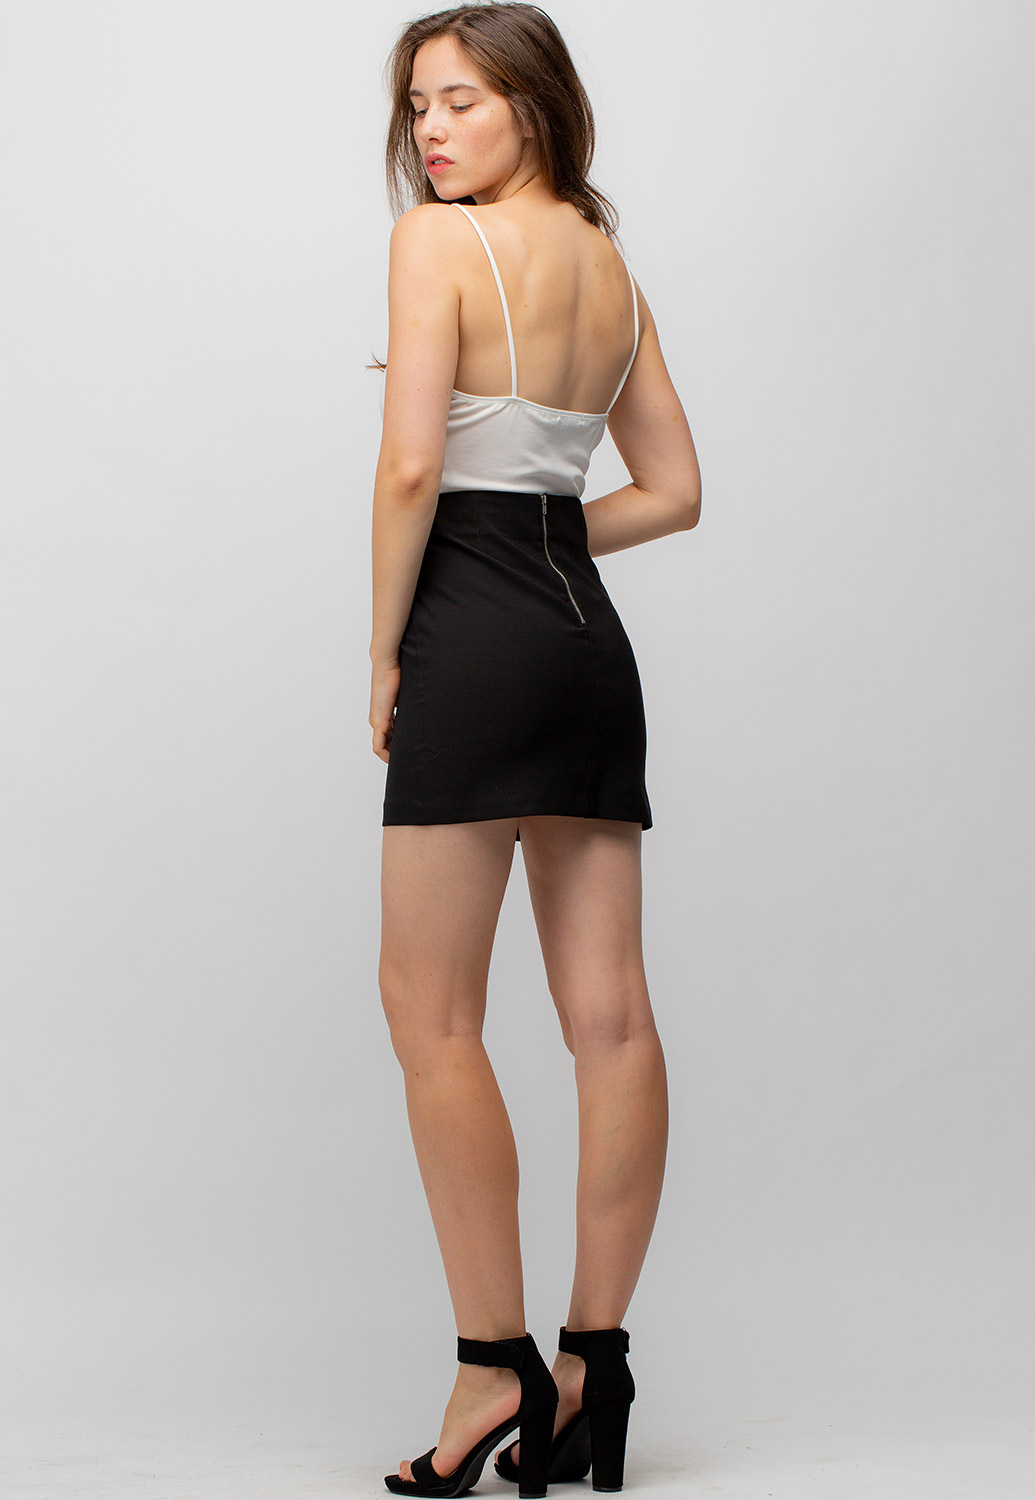 Black Stretchy Mini Skirt With Zipper Back